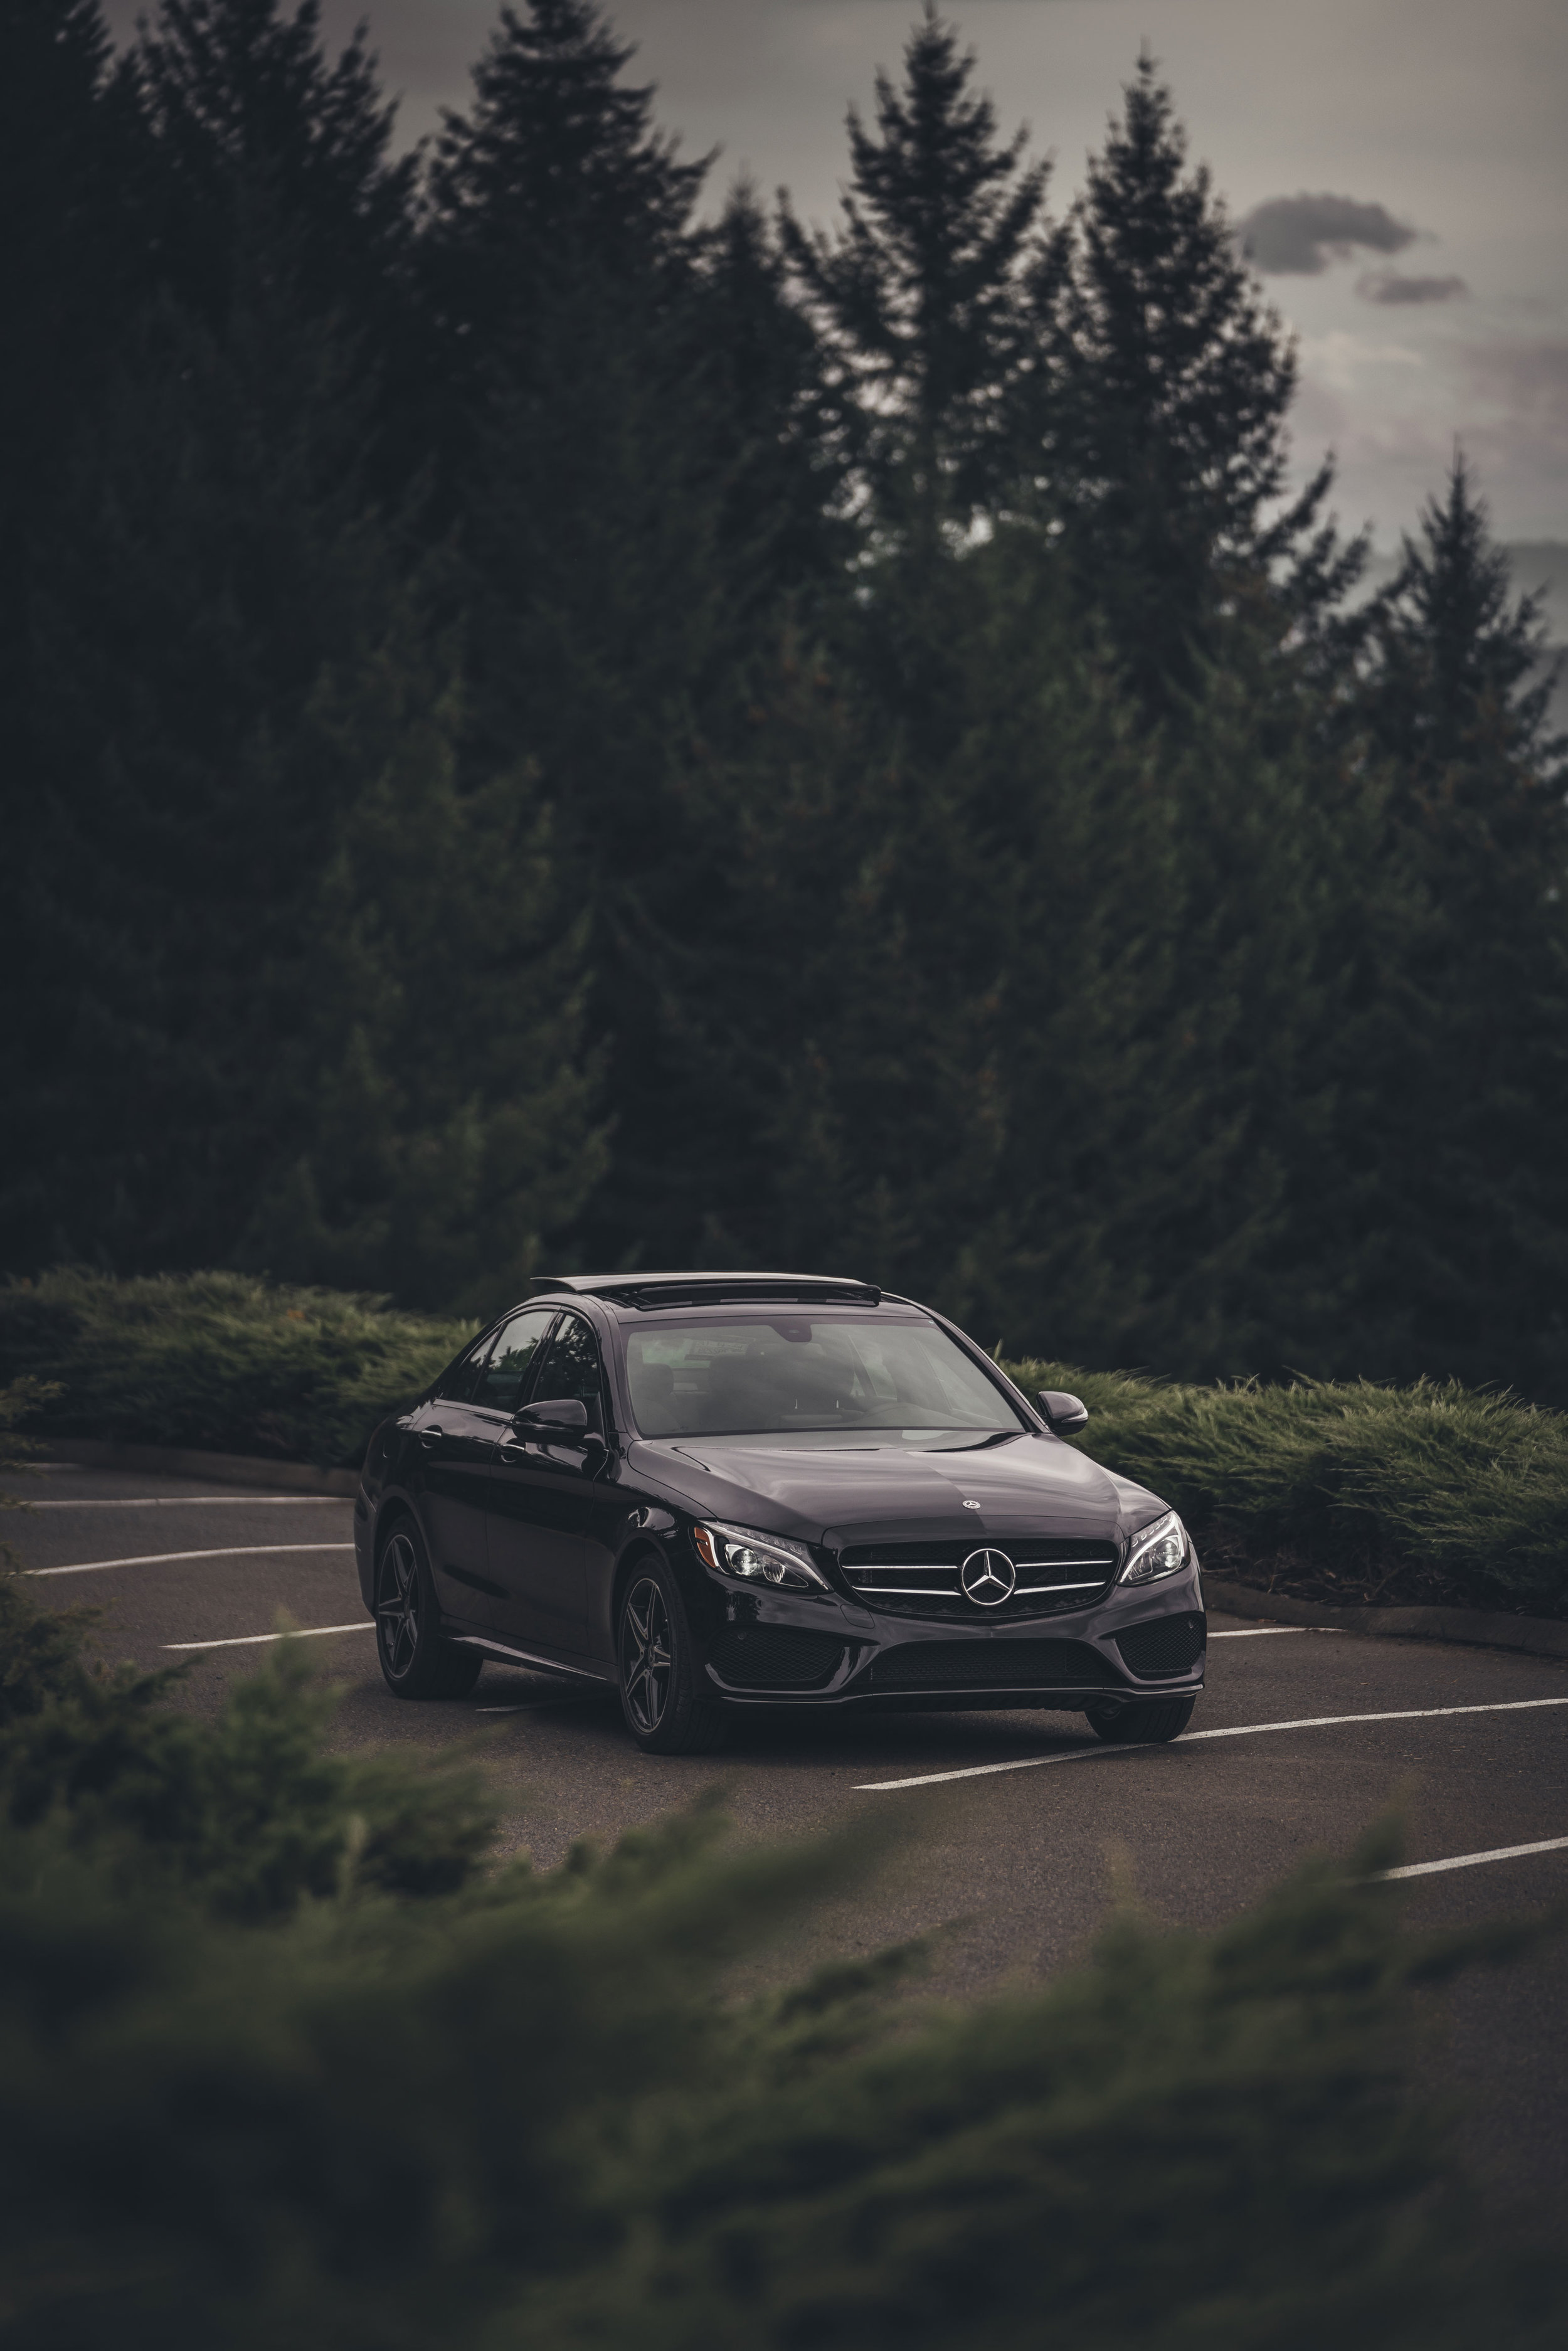 Cristofer_Jeschke_c300_amg_4matic-(1-of-1)-6.jpg